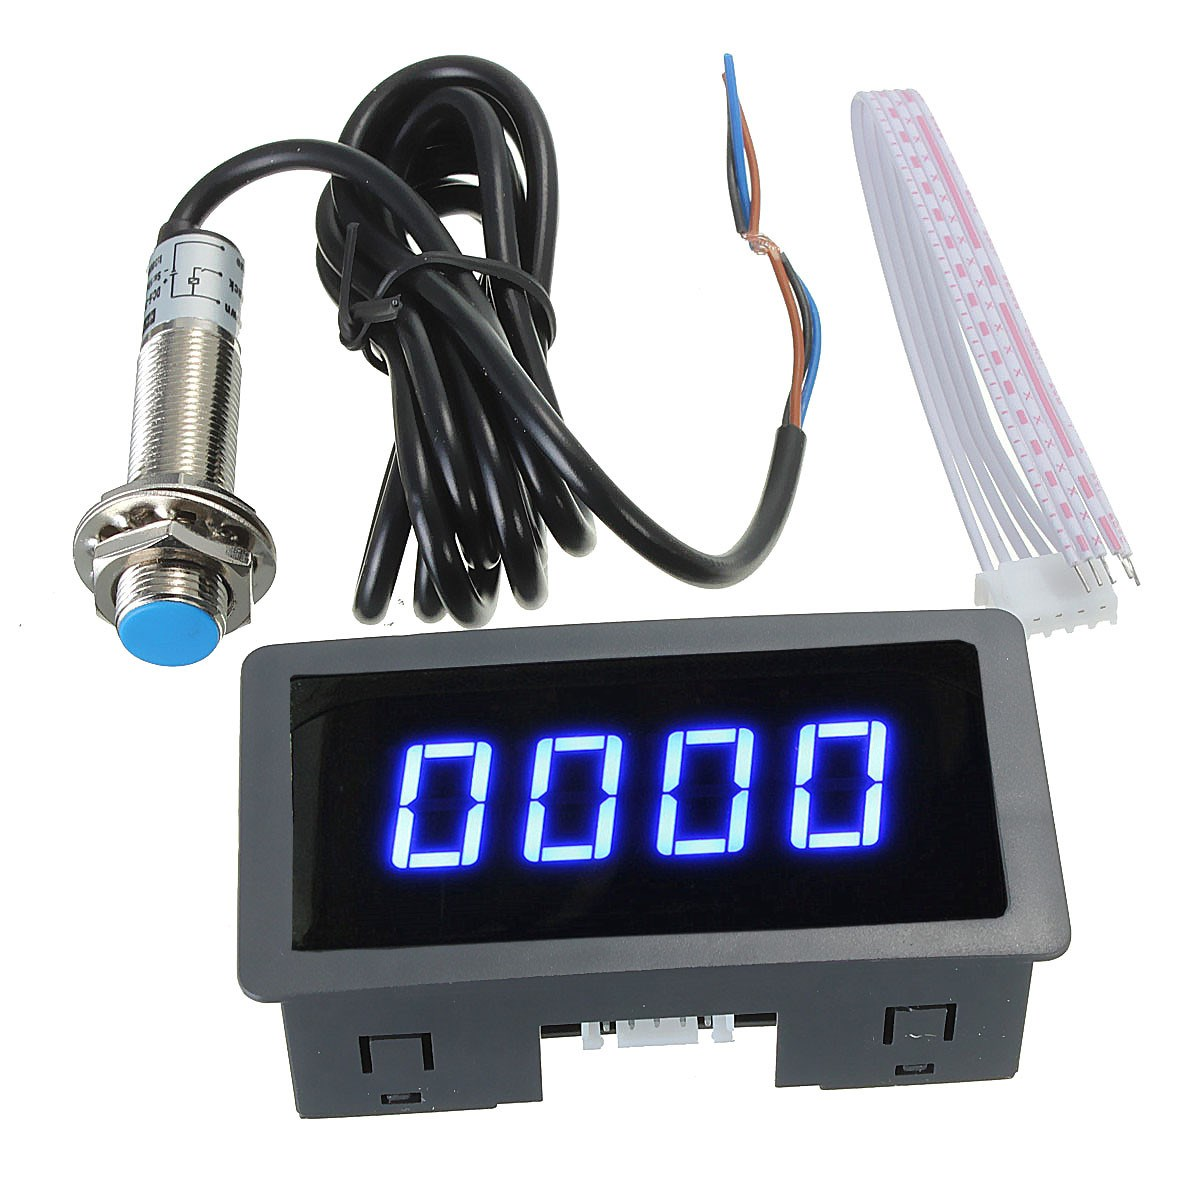 4 Digital LED Blue Tachometer RPM Speed Meter+Hall Proximity Switch Sensor NPN 012602 motor speed sensor module w switch deep blue